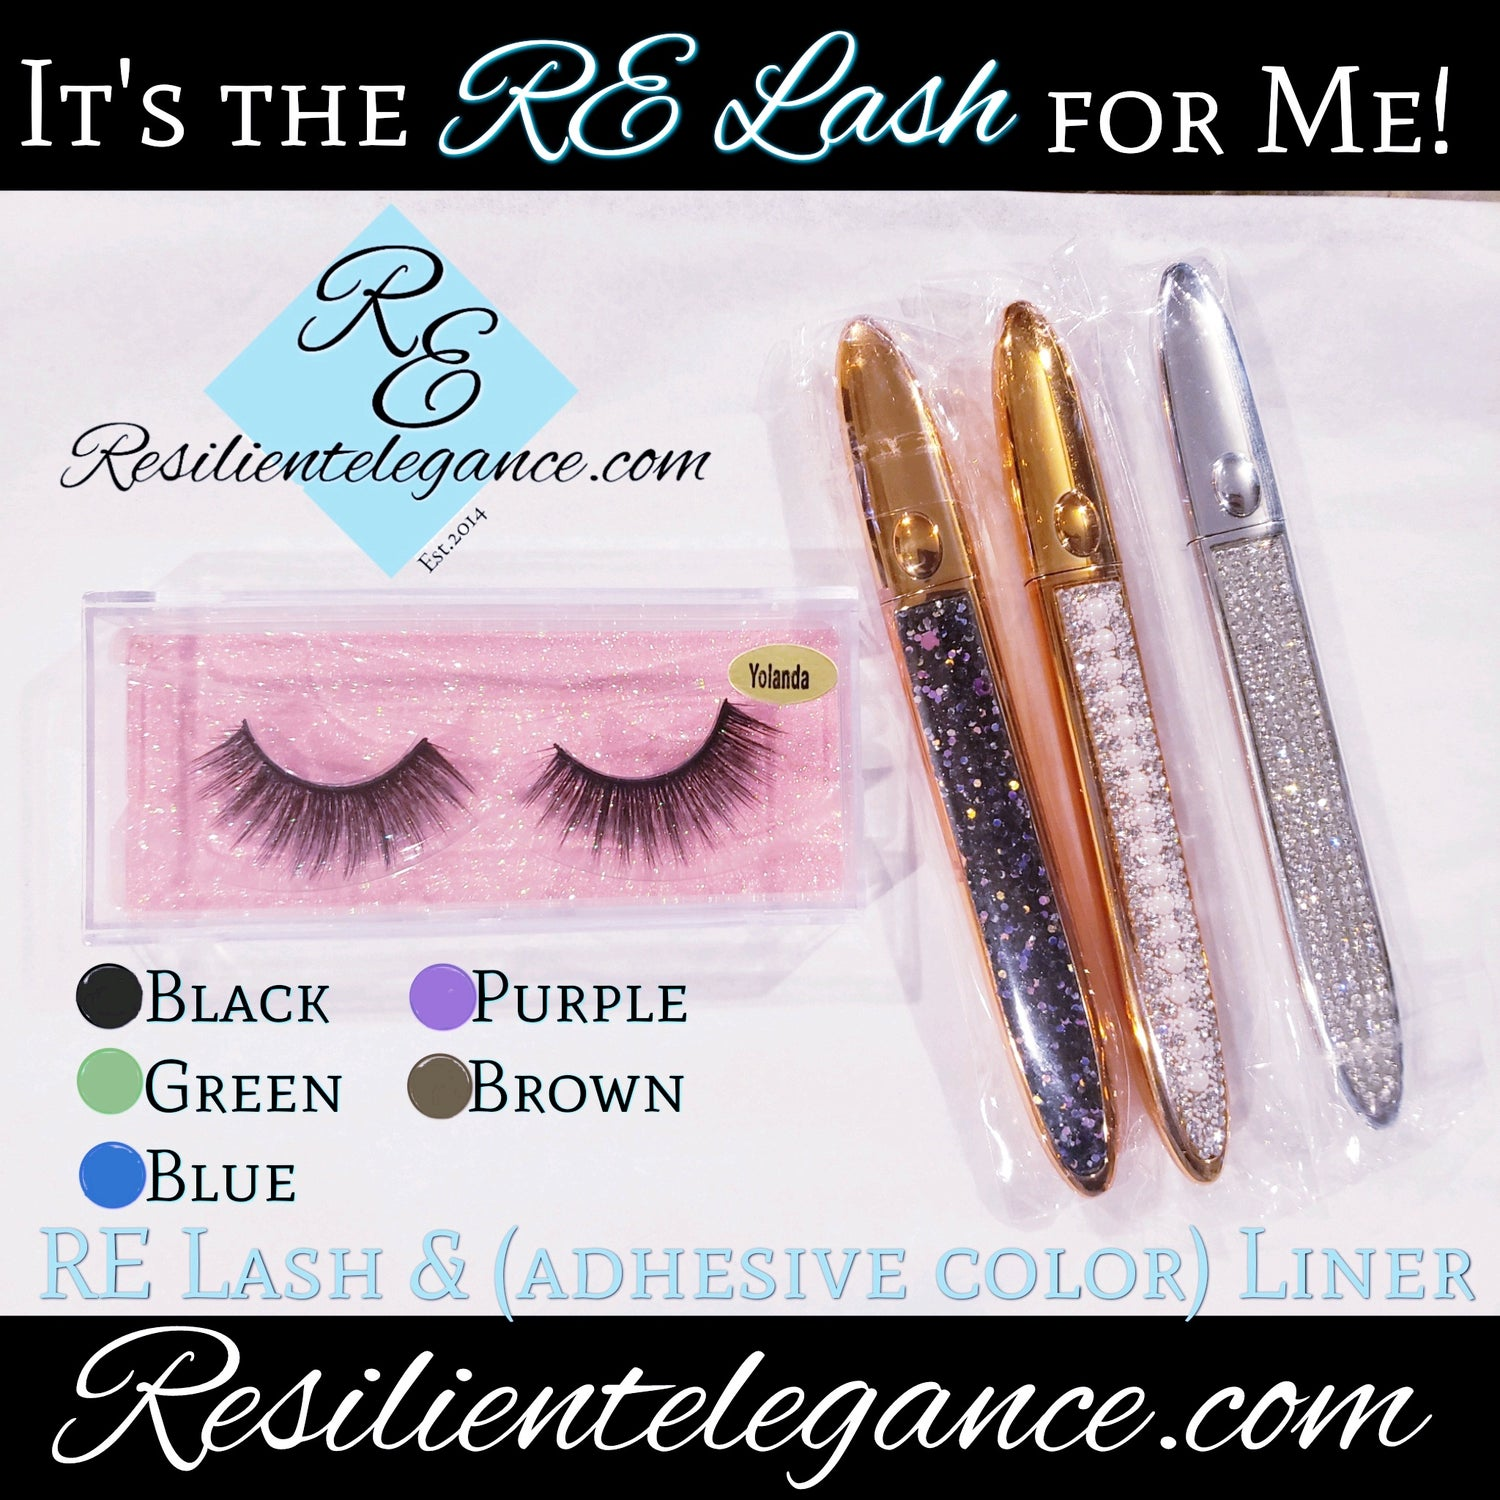 Image of RE Lash Set: Lashes •Adhesive Colored Liner